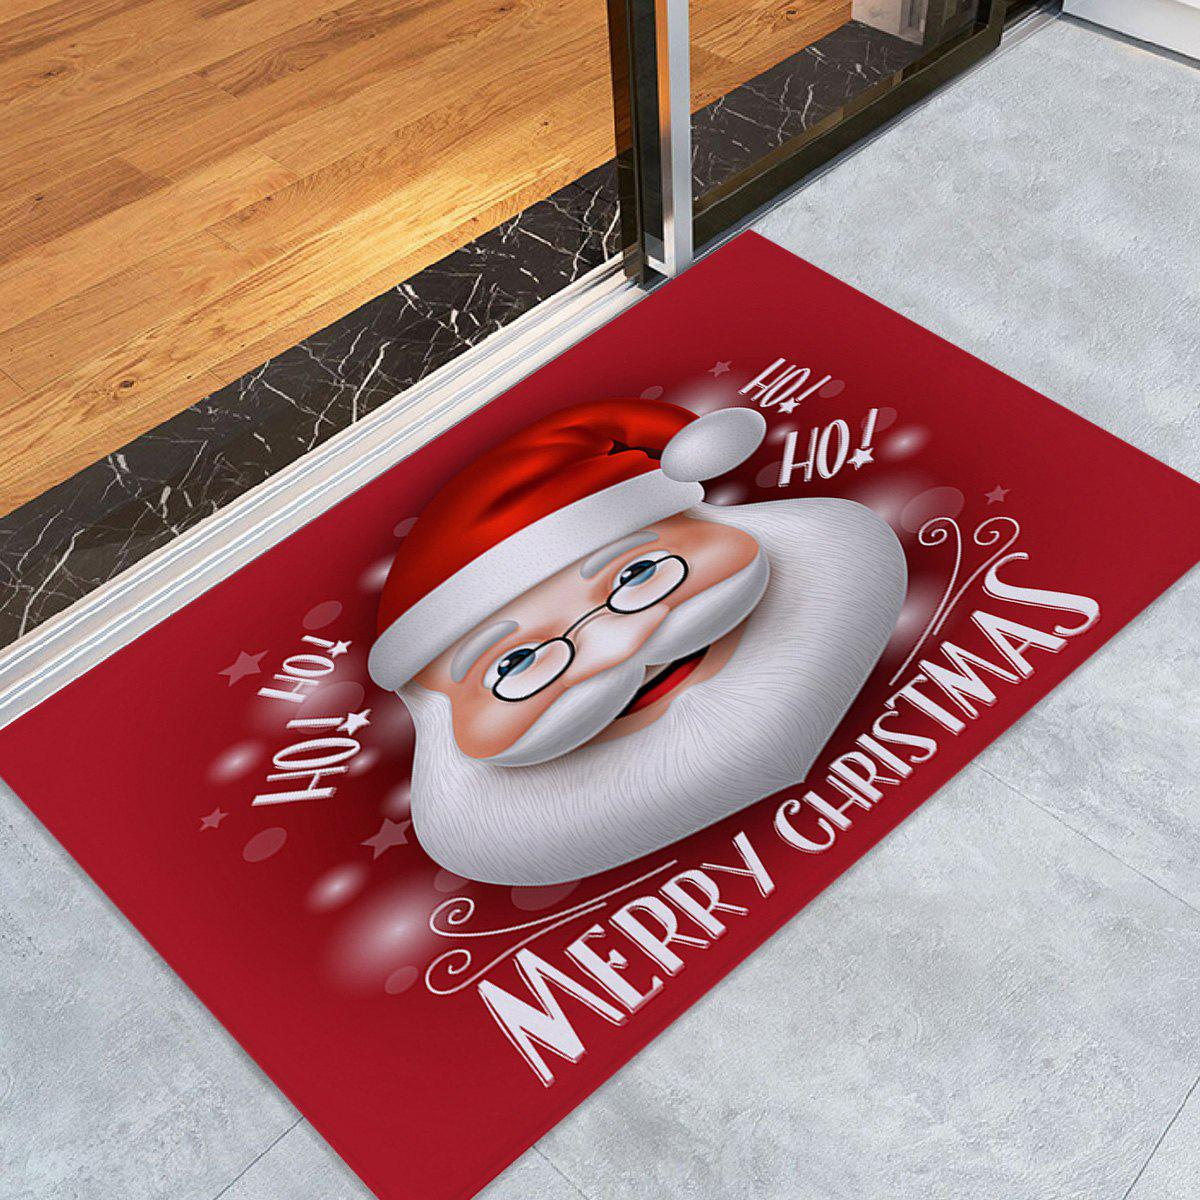 Santa Claus Print Coral Fleece Nonslip Christmas Bath MatHOME<br><br>Size: W24 INCH * L35.5 INCH; Color: RED; Products Type: Bath rugs; Materials: Coral FLeece; Pattern: Letter,Santa Claus; Style: Festival; Shape: Rectangular; Package Contents: 1 x Rug;